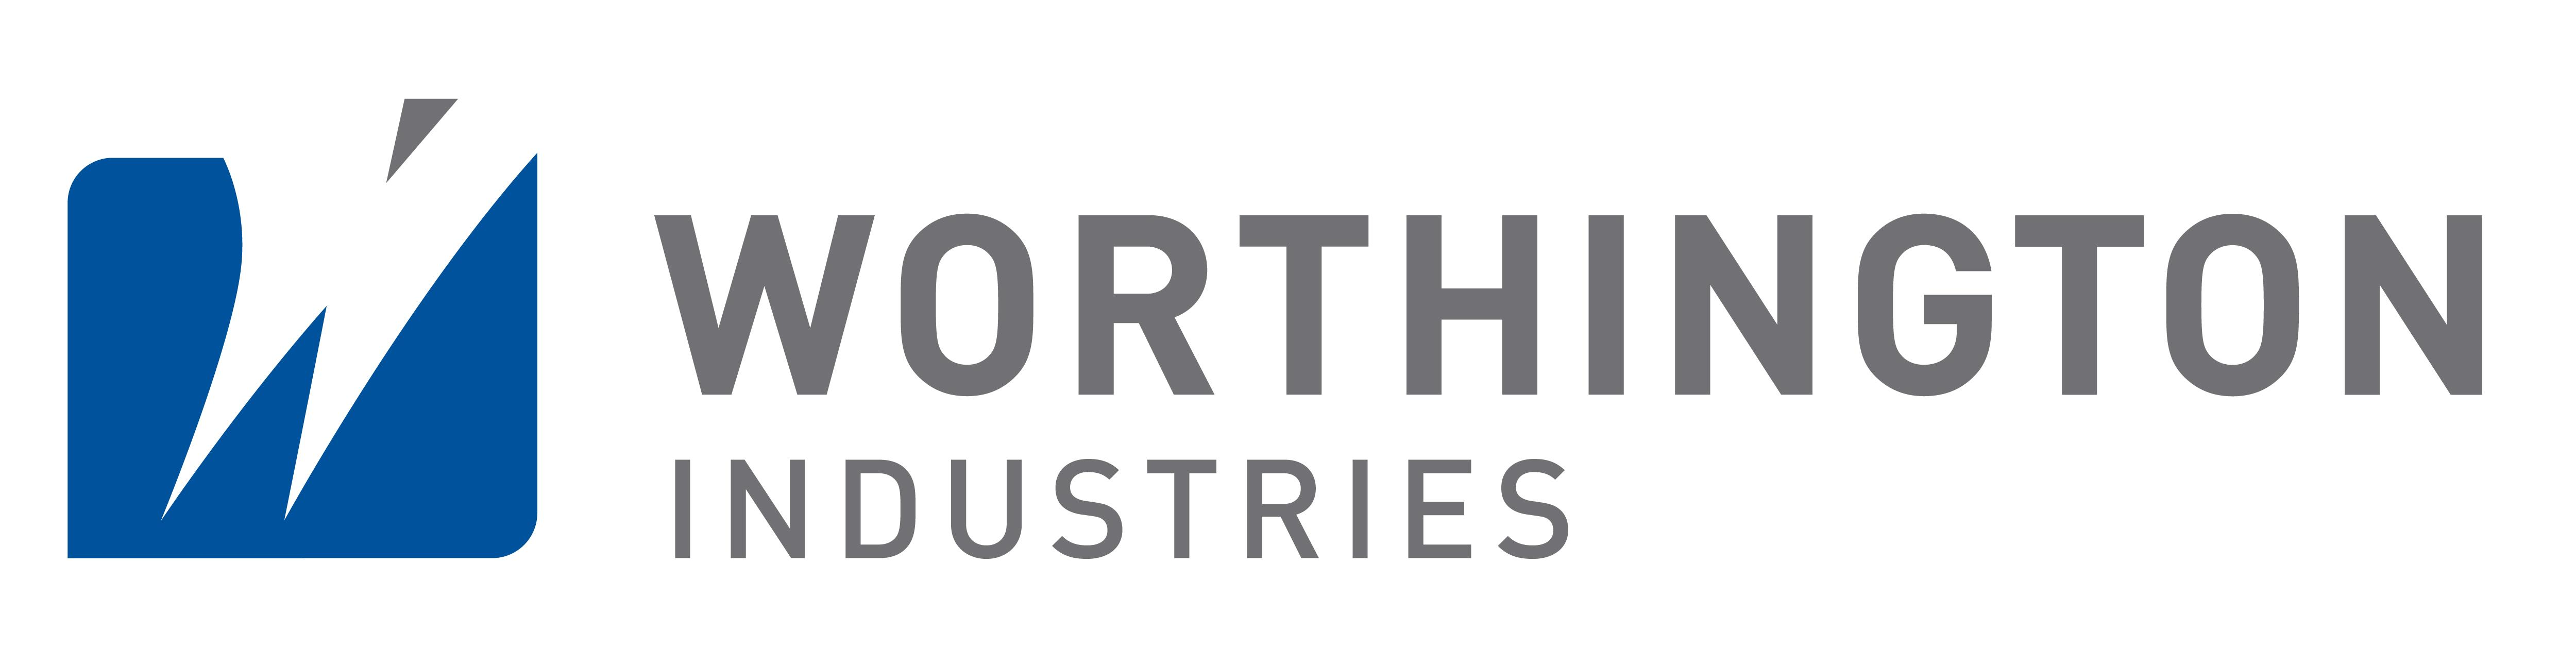 logo worthington